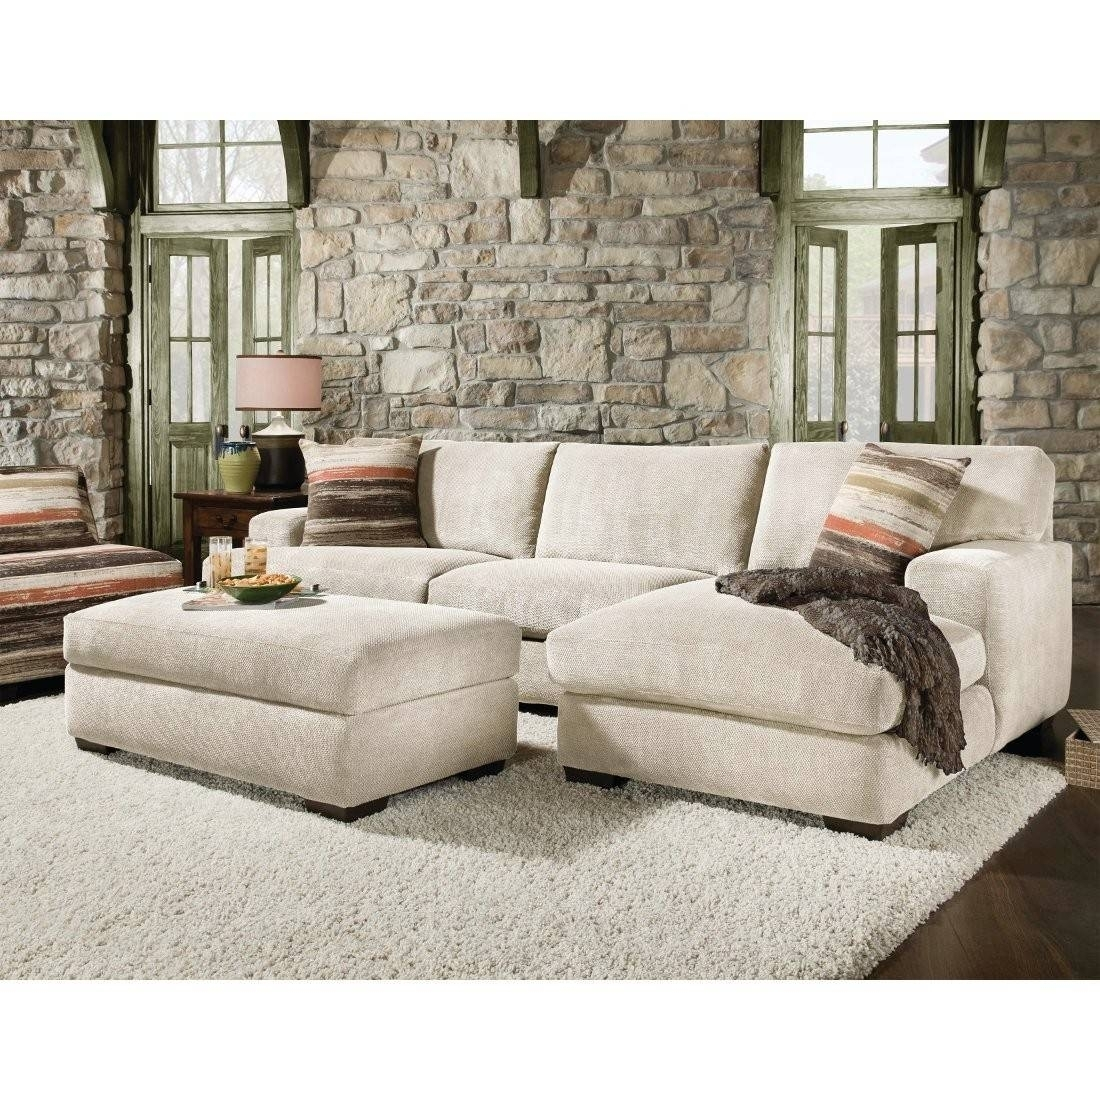 Beautiful Down Filled Sectional Sofa 75 For Your Modern Sofa Ideas Inside Down Filled Sectional Sofas (Image 1 of 10)